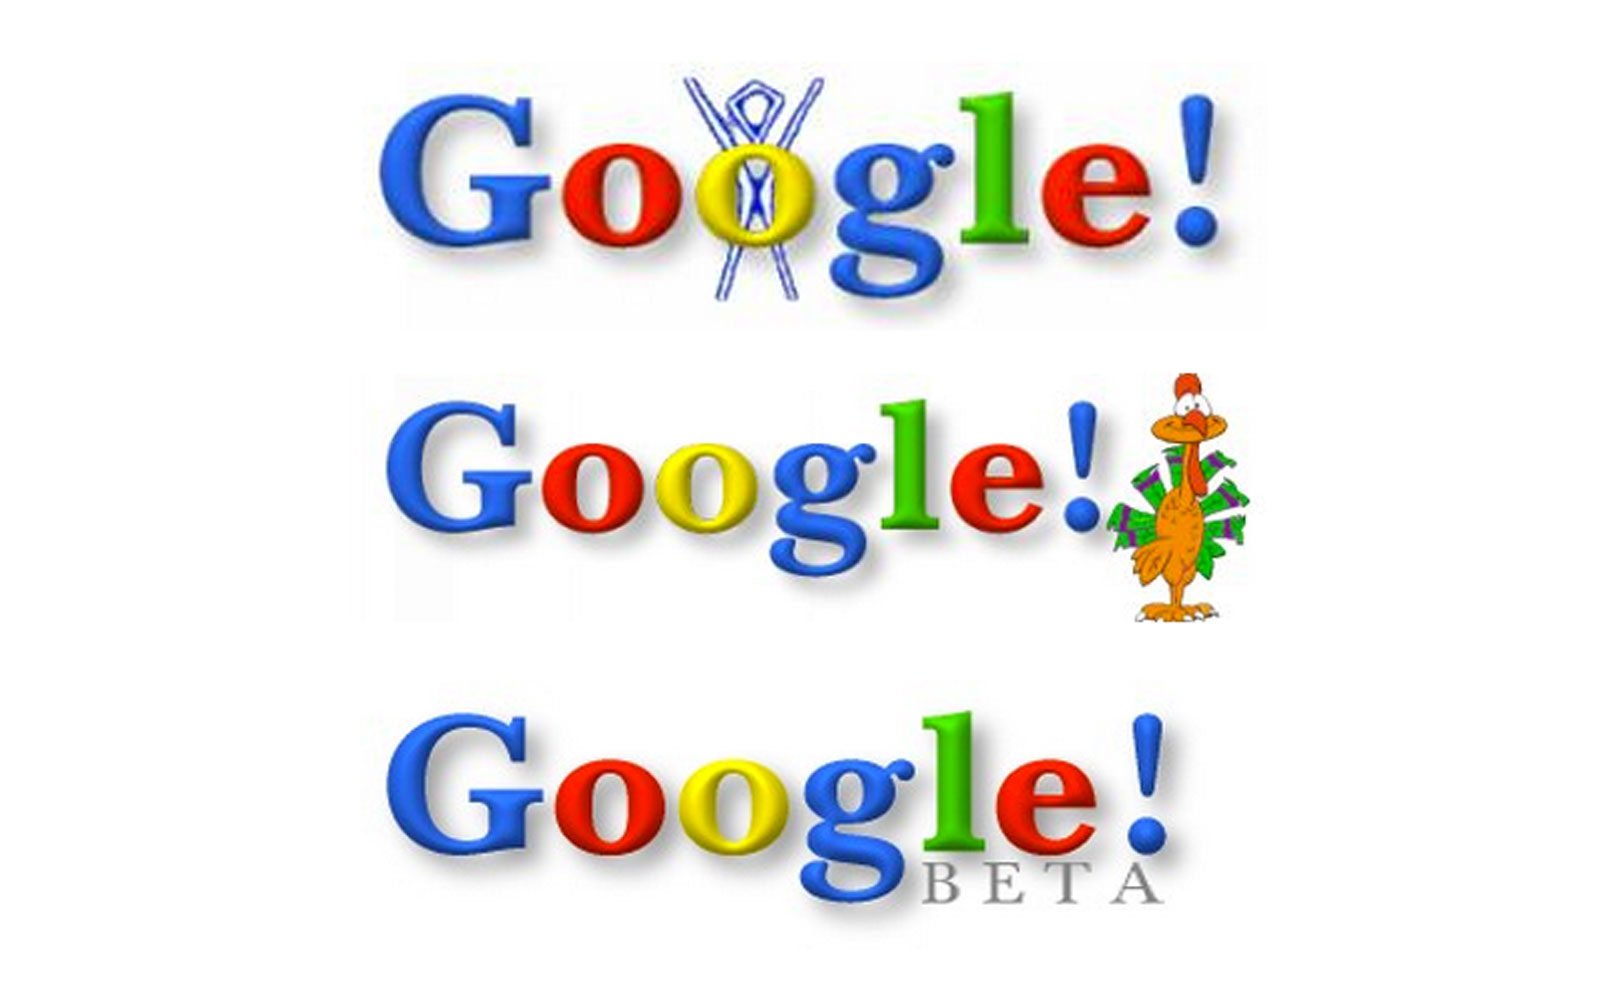 The first Google Doodle appeared in 1999